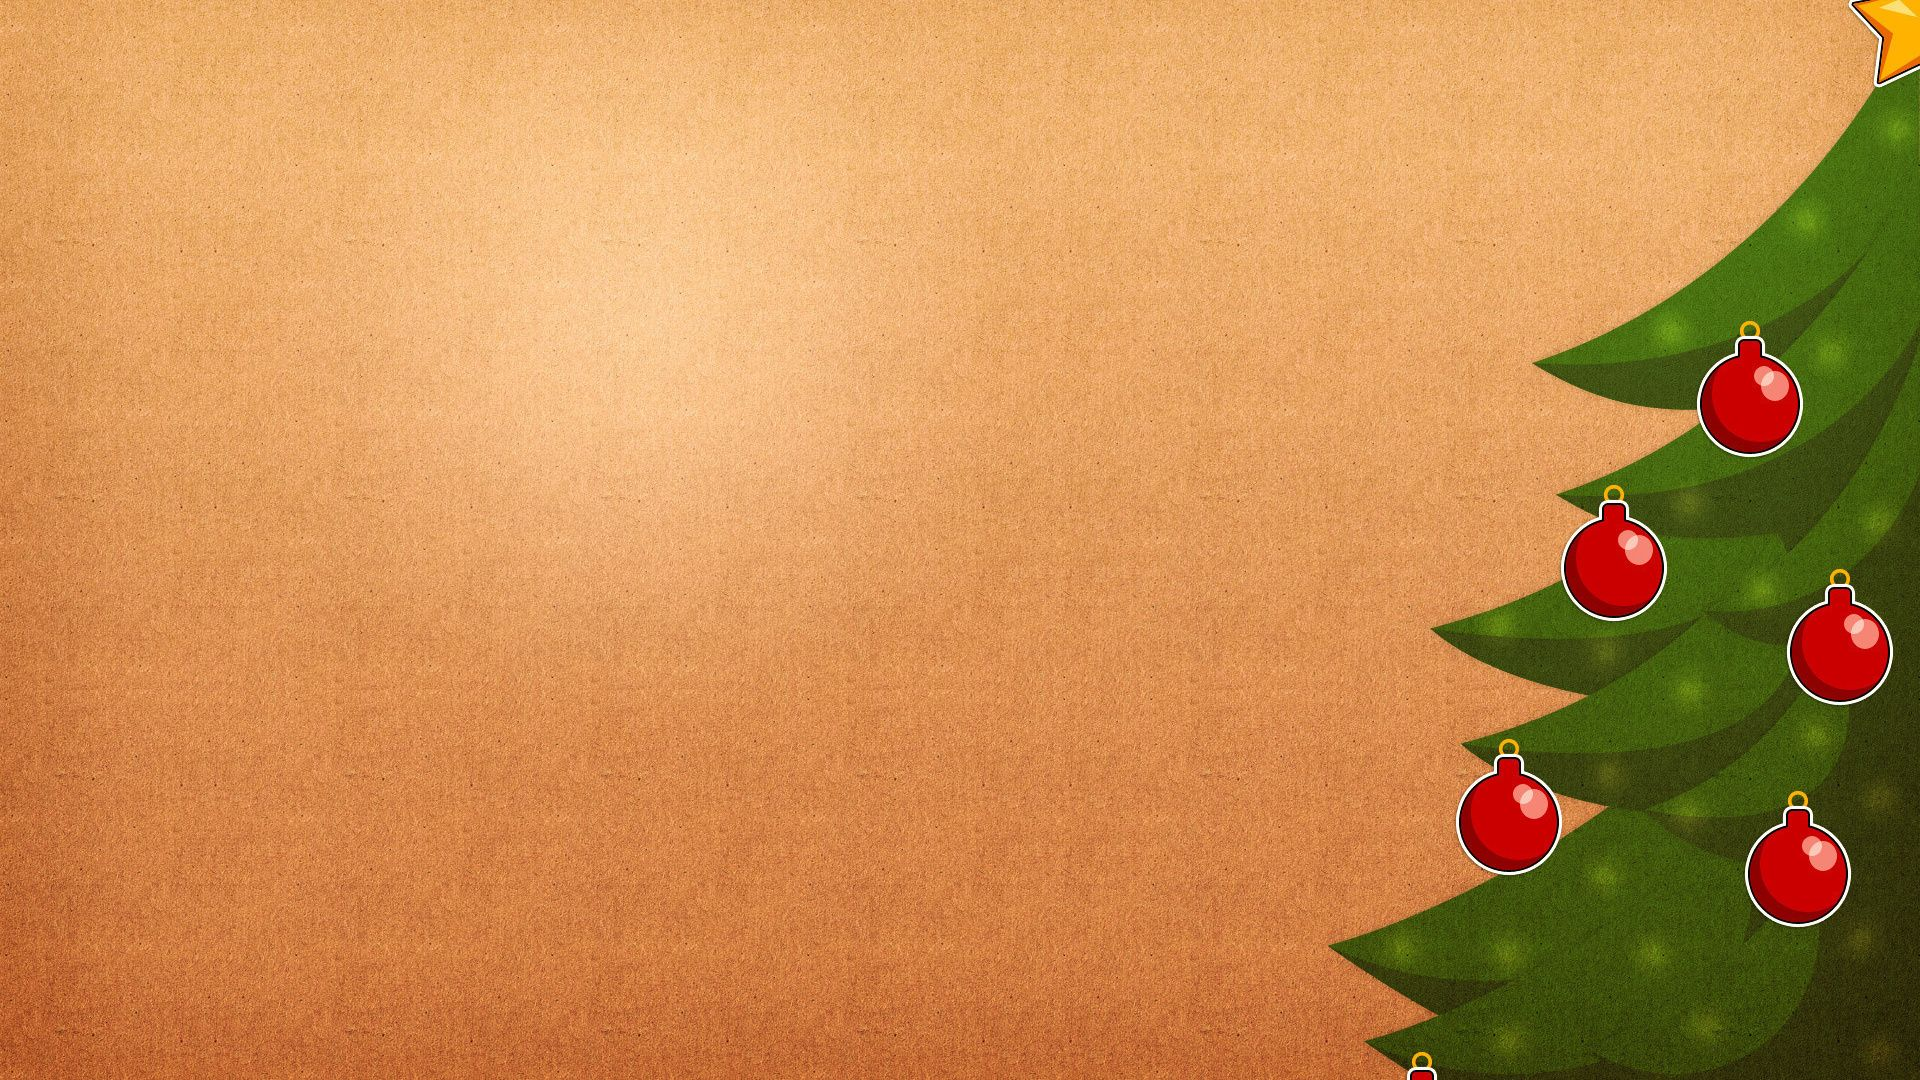 Christmas For Website download free wallpaper image search